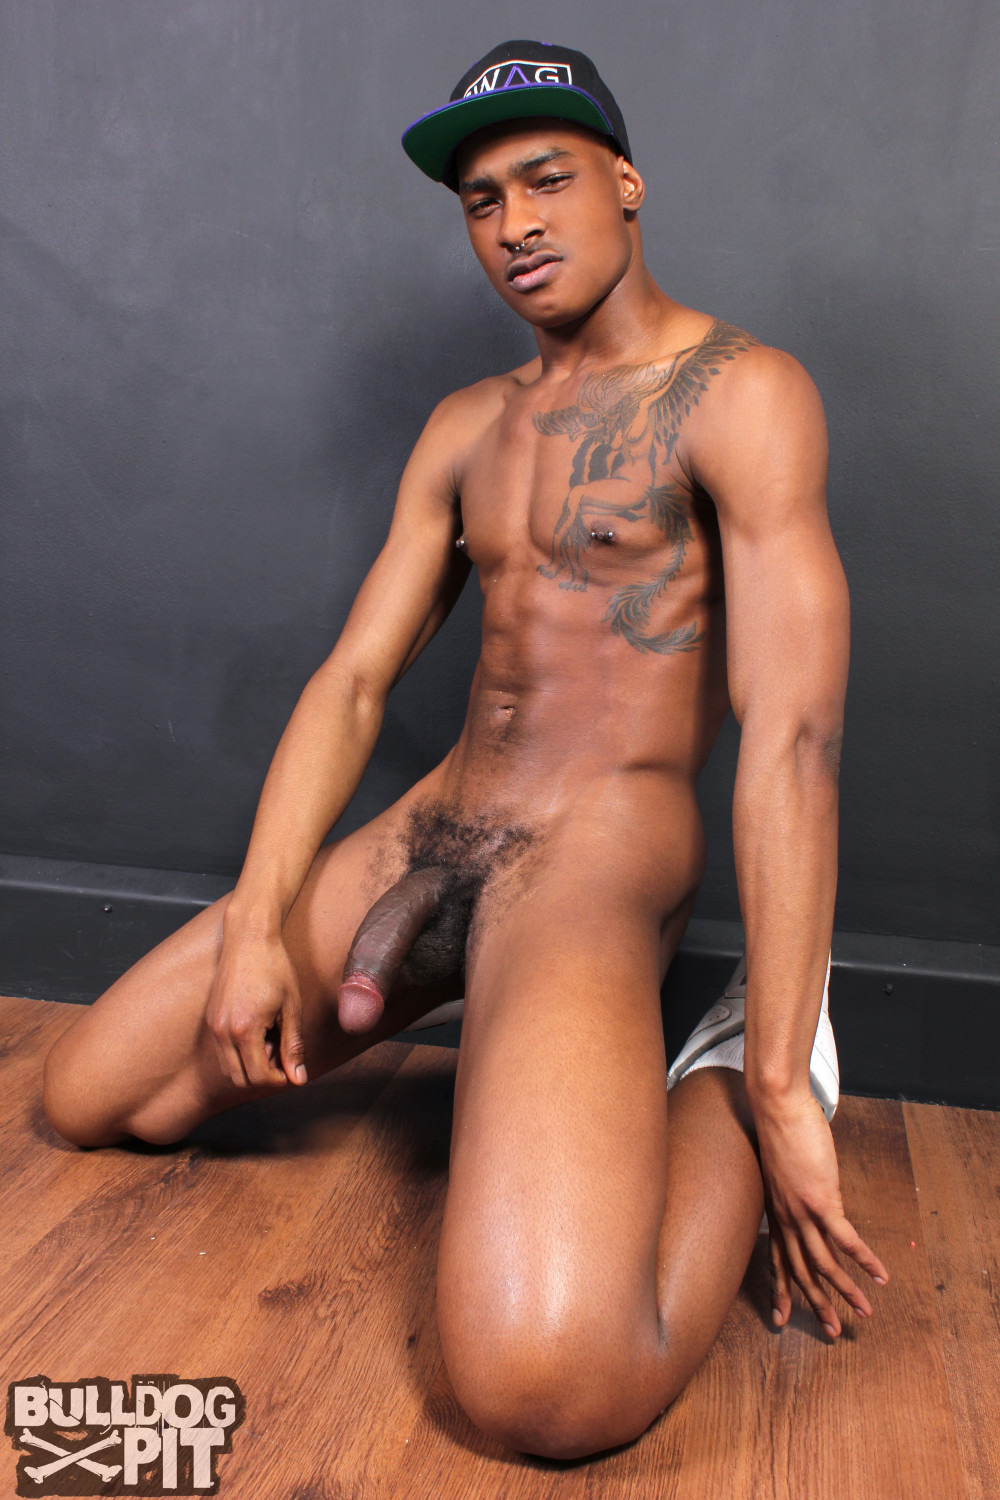 Bulldog-Pit-Marco-Session-and-Riley-Coxx-and-Tyler-Tyson-Interracial-Threesome-Big-Black-Cock-Amateur-Gay-Porn-15 Amateur Interracial Threesome In Underground London Sex Club